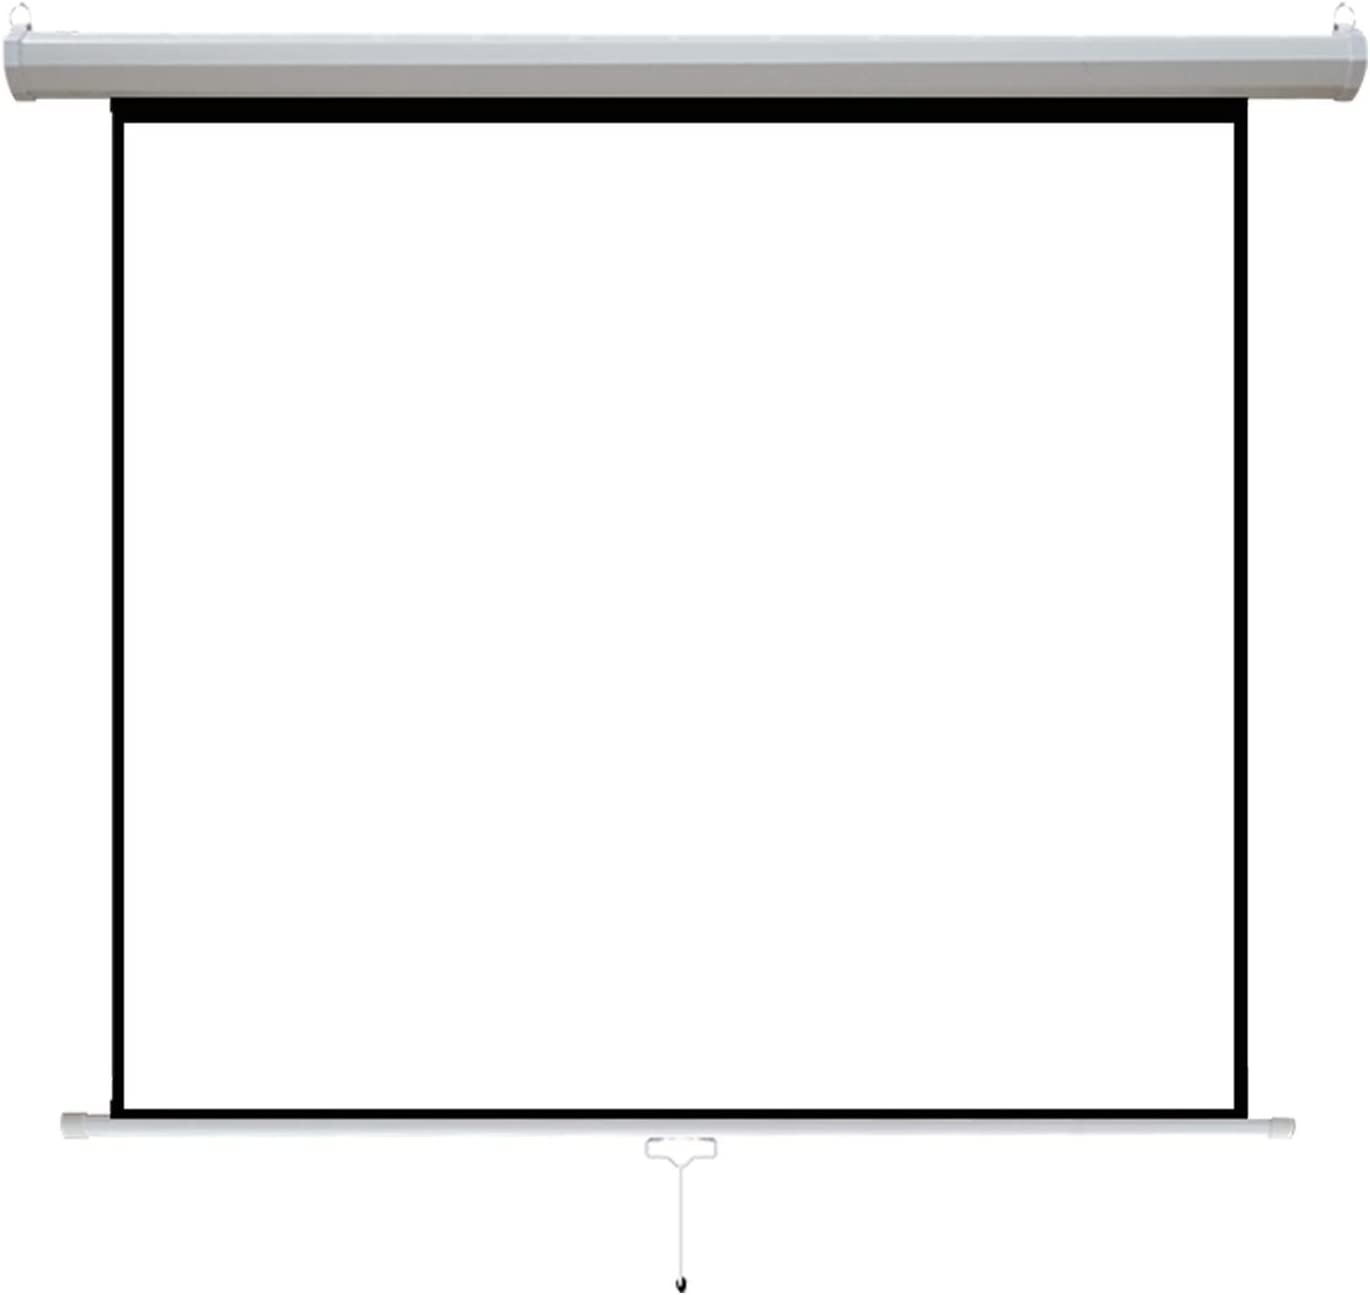 60'' Projector Screen Projection Screen, 16:9 HD Widescreen Retractable Auto-Locking Portable Projection Screen, Home Theater Movie Theatre White Projection Screen